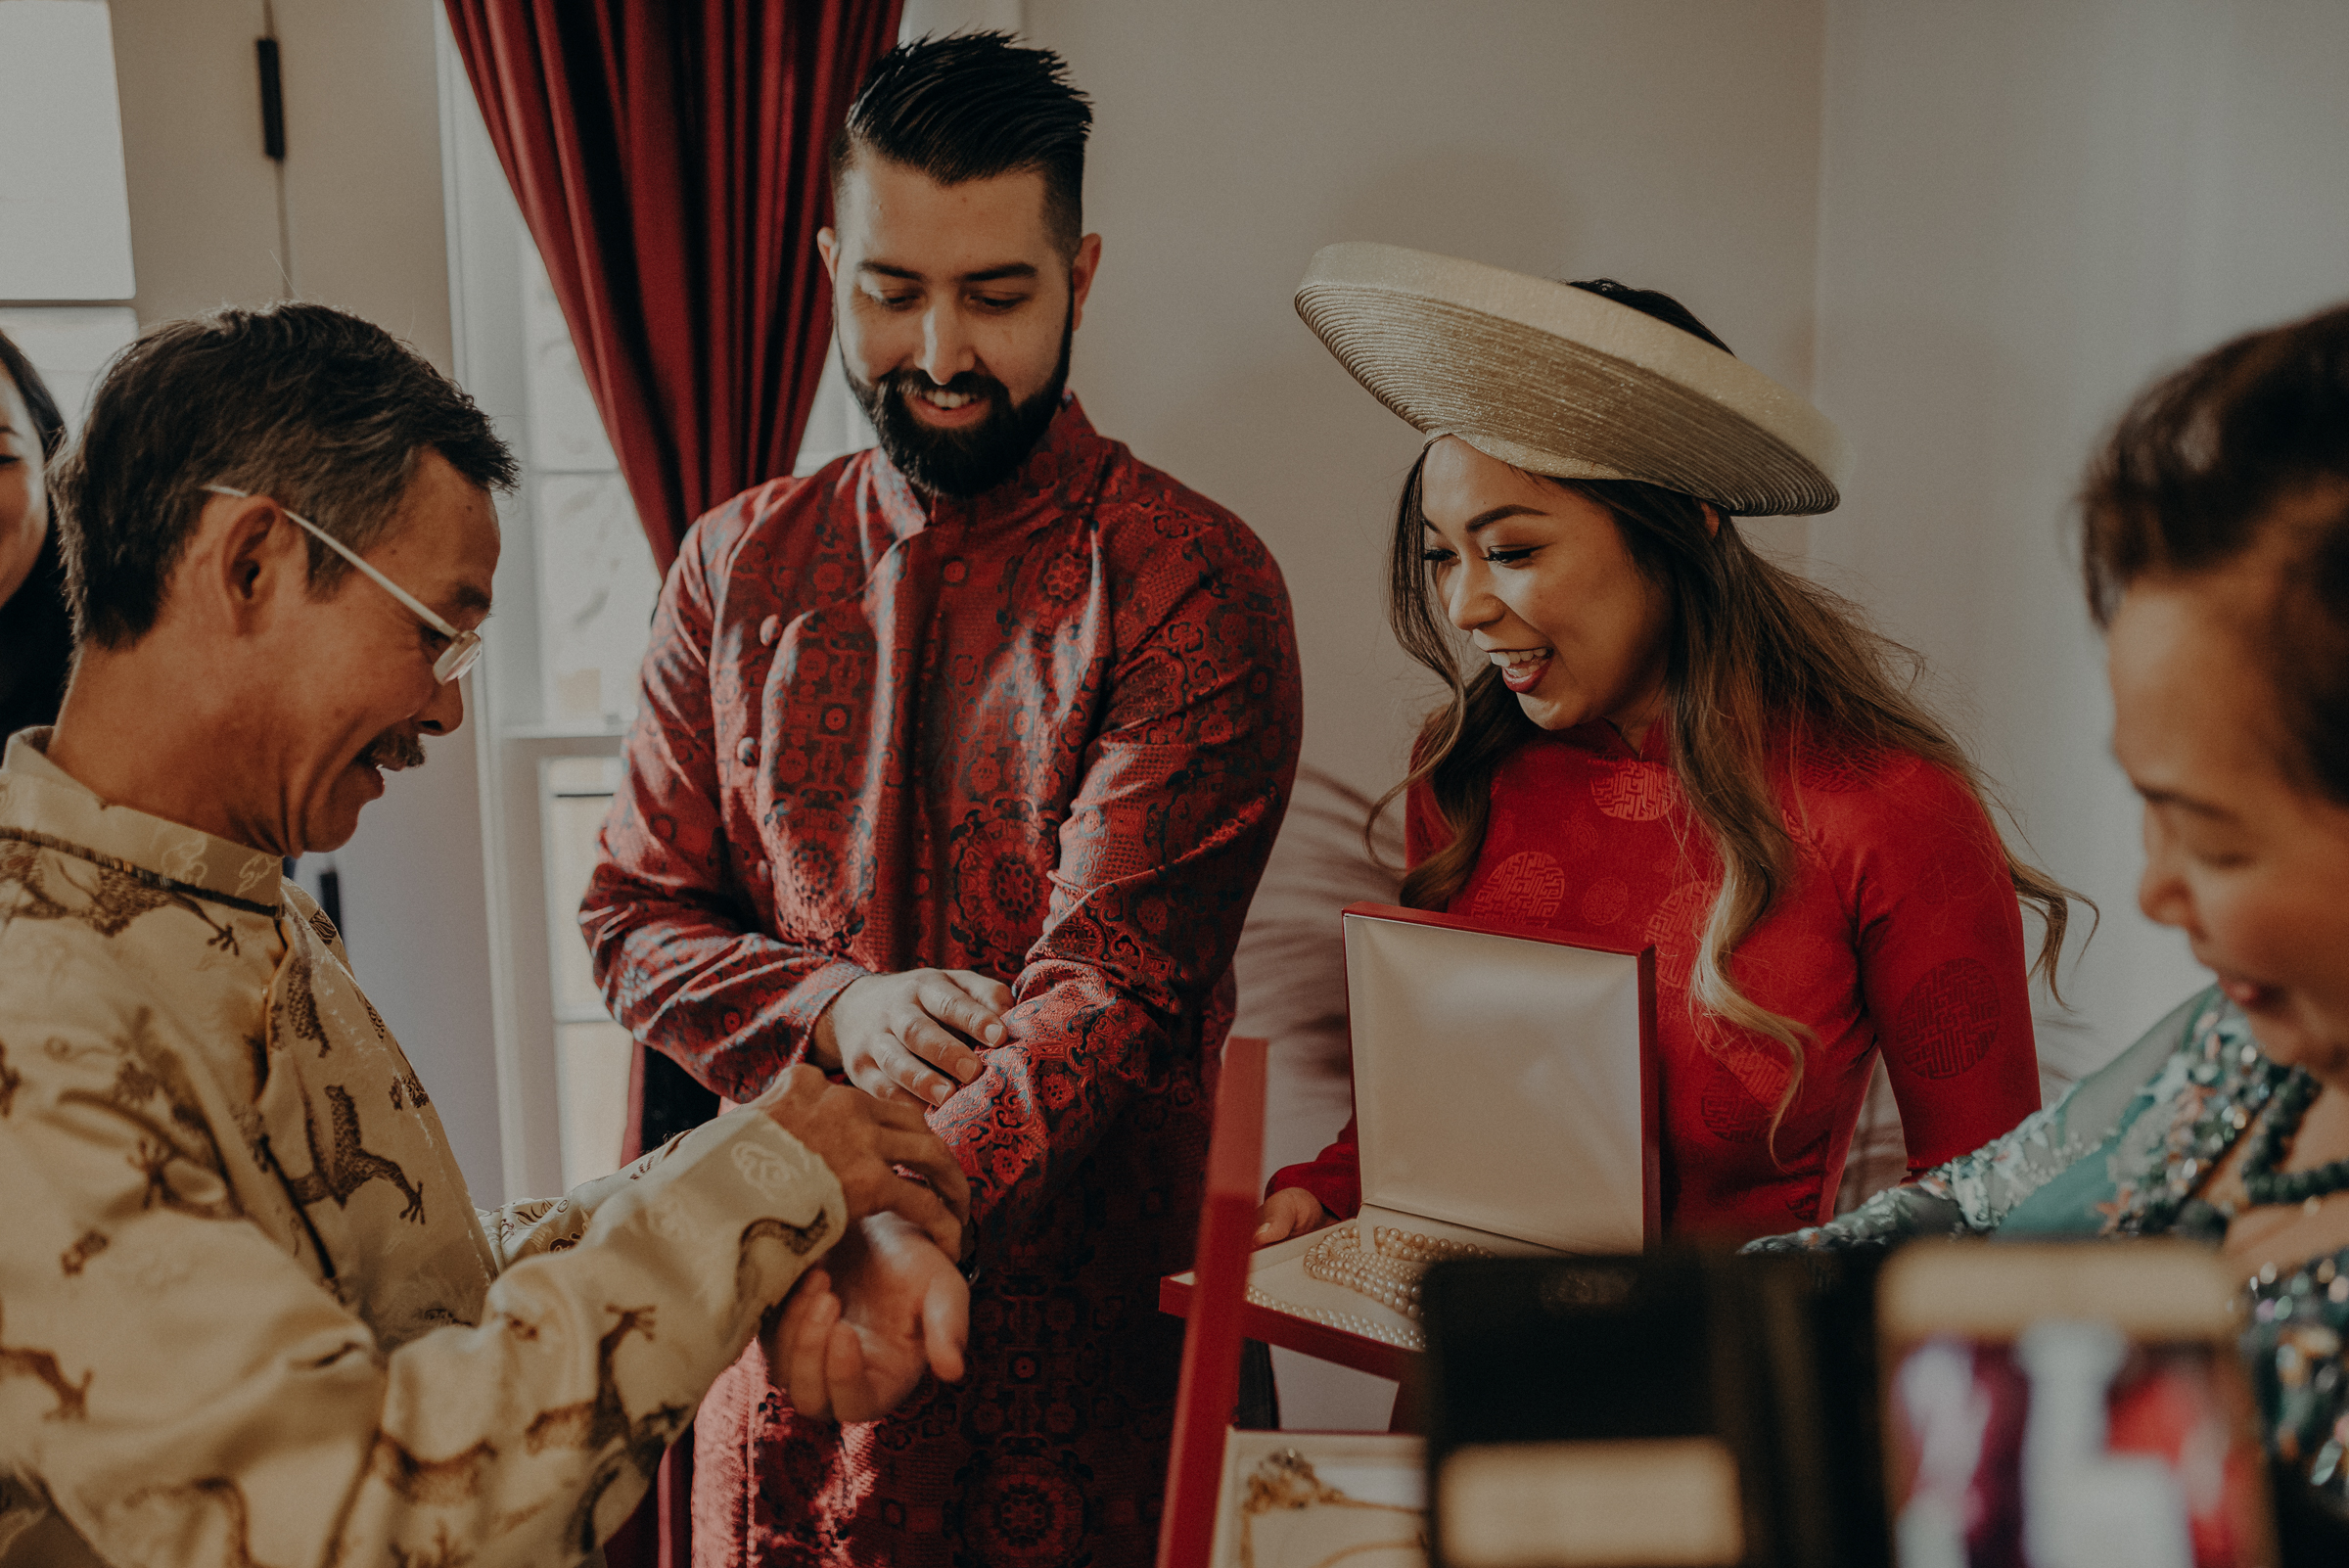 Los Angeles Wedding Photographer - IsaiahAndTaylor.com - The Ebell of Long Beach Wedding - Traditional Vietnamese tea ceremony-055.jpg